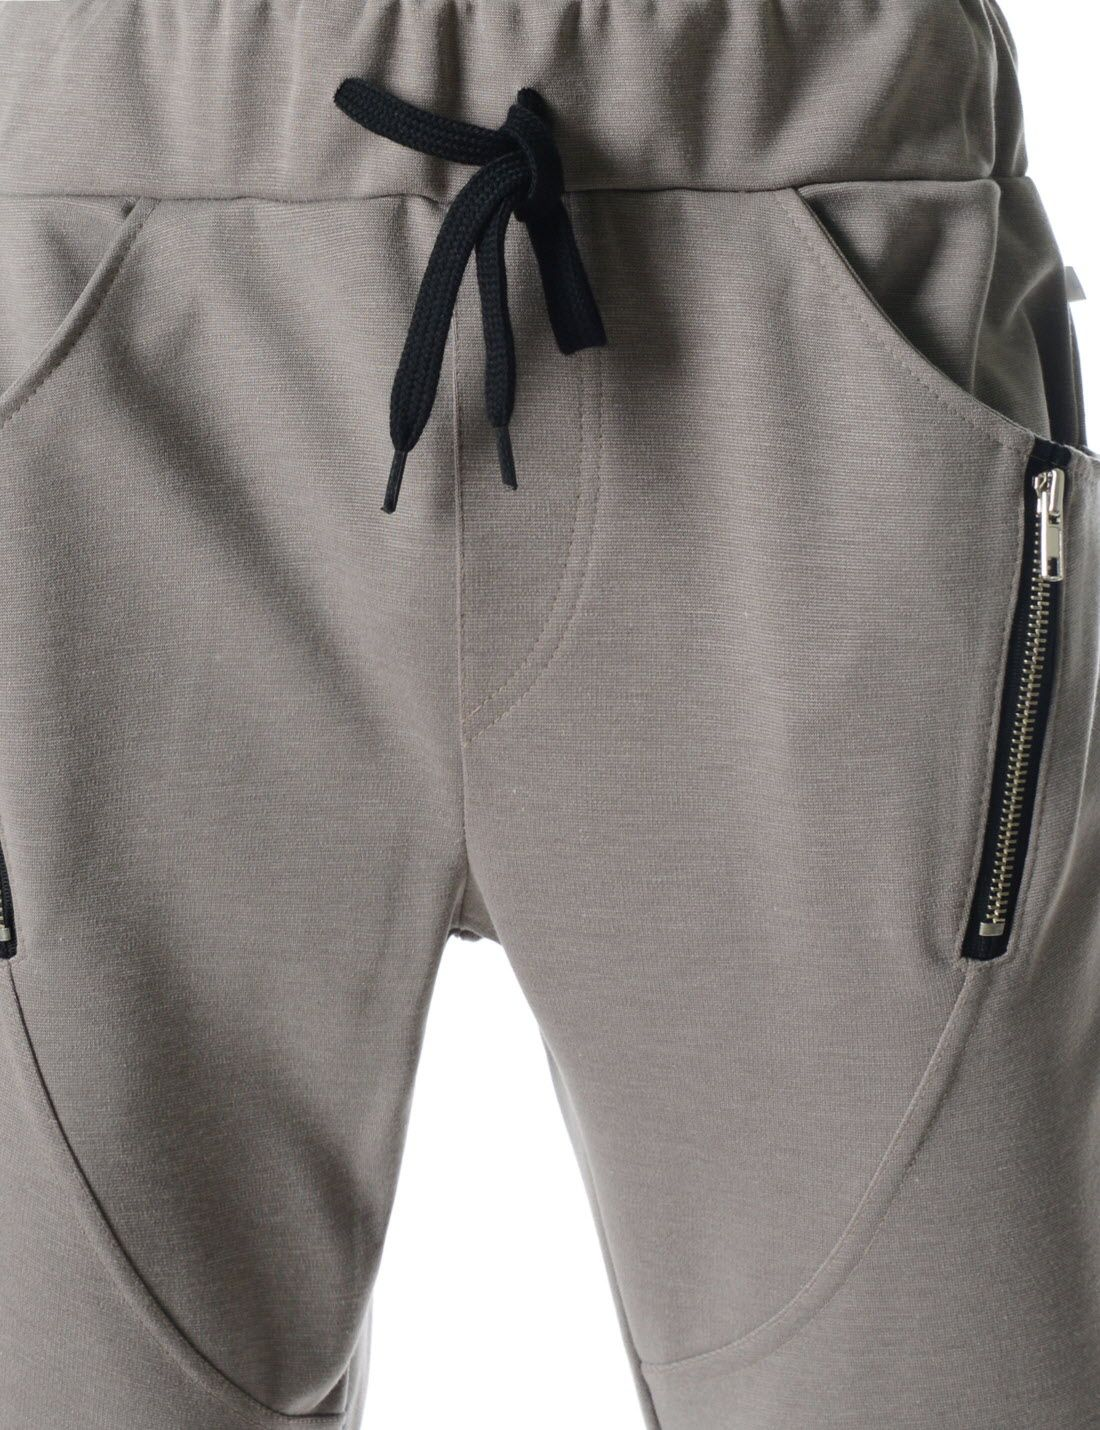 (MZP09) TheLees Running Trousers Diagonal Line Zipper Active Jogger  Sweatpants 15e098ef78ccb